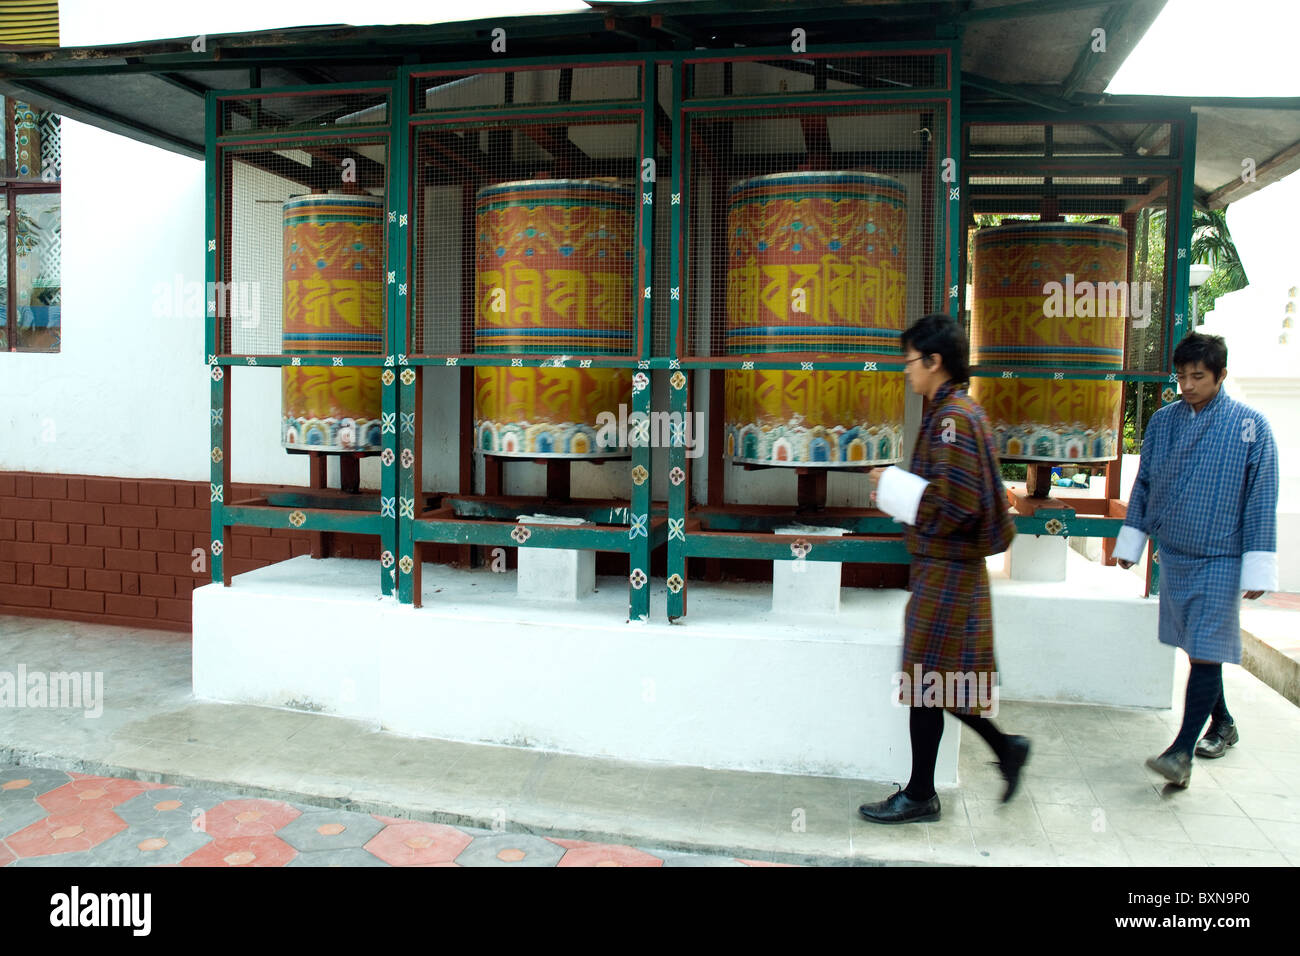 Ar the Kharbandi monastery near Phuntsholing, Bhutan, two young men  in national dress approach sacred prayer wheels - Stock Image